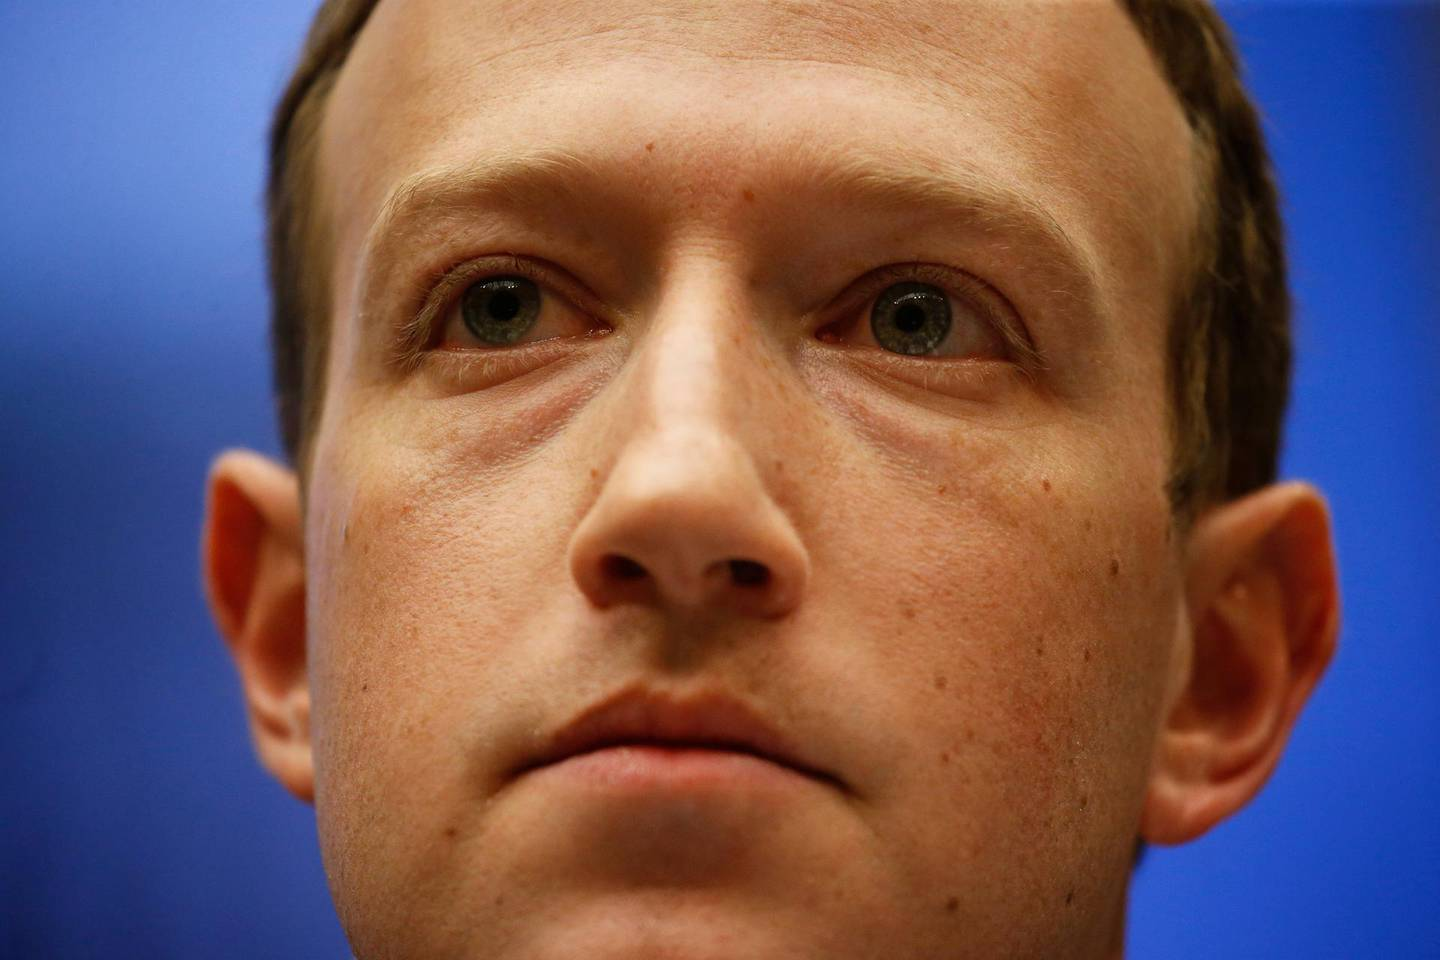 FILE PHOTO: Facebook CEO Mark Zuckerberg testifies before a House Energy and Commerce Committee hearing regarding the company's use and protection of user data on Capitol Hill in Washington, U.S., April 11, 2018. REUTERS/Leah Millis/File Photo